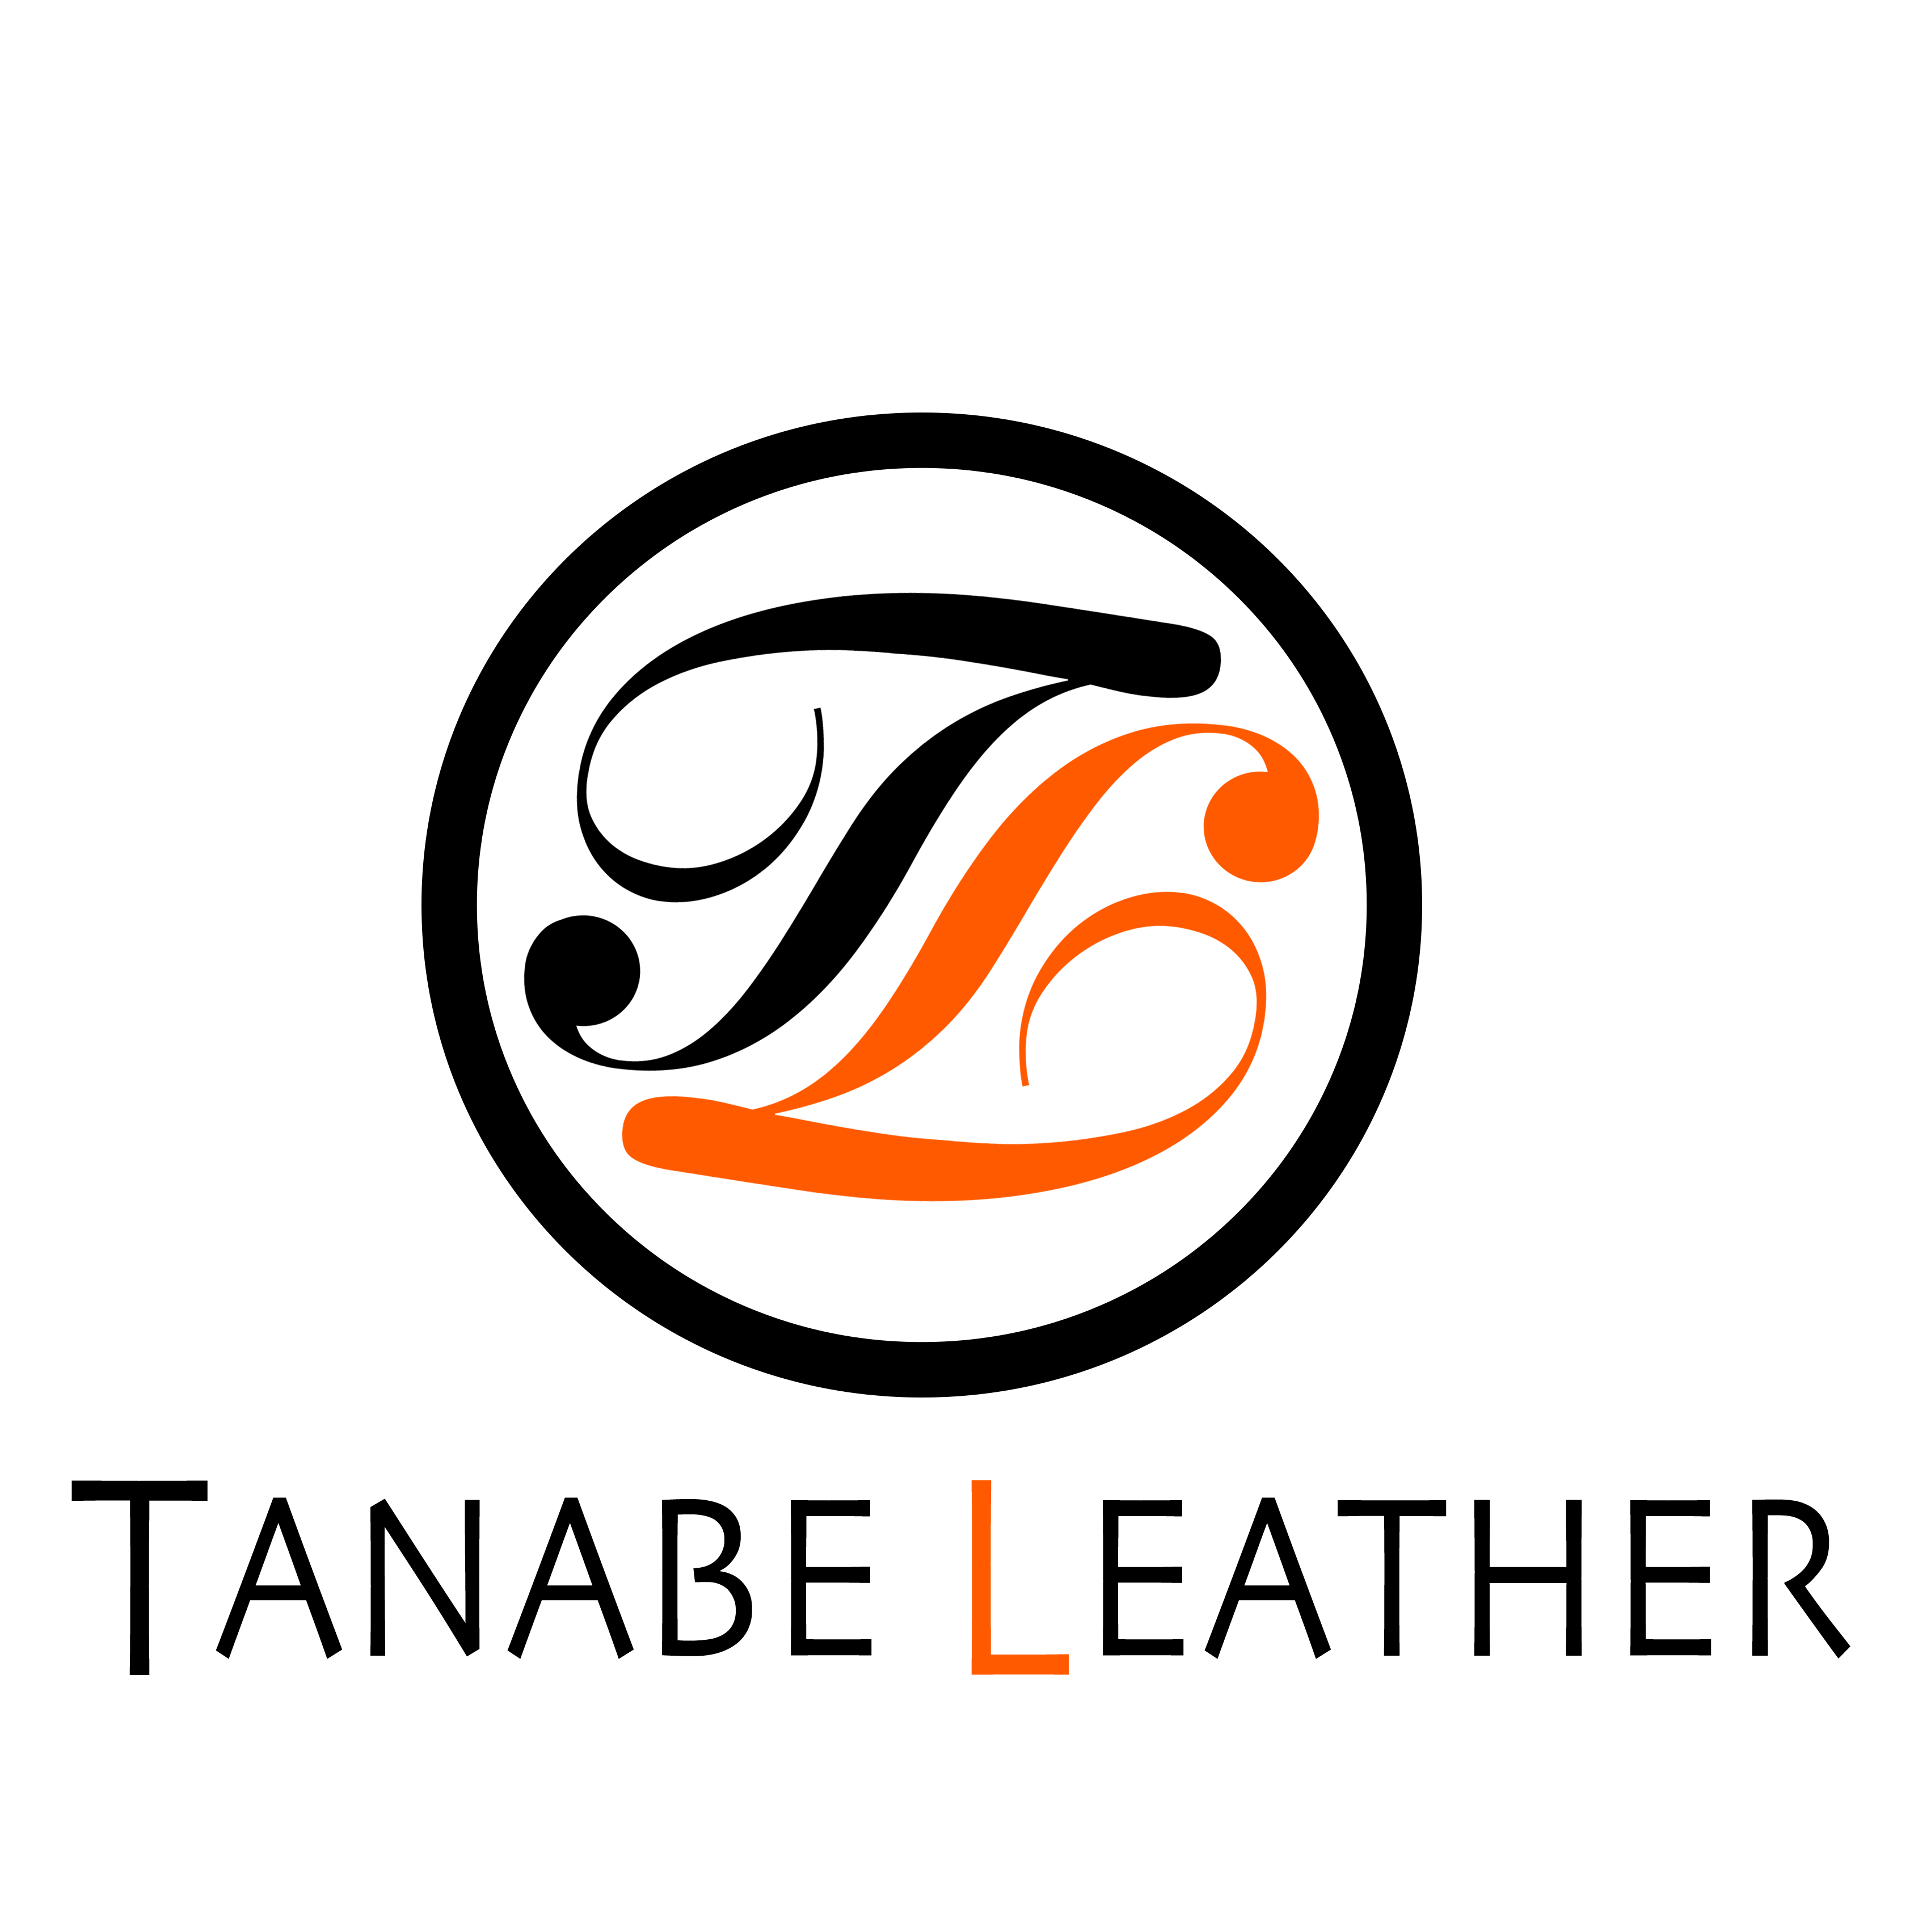 TANABE LEATHER